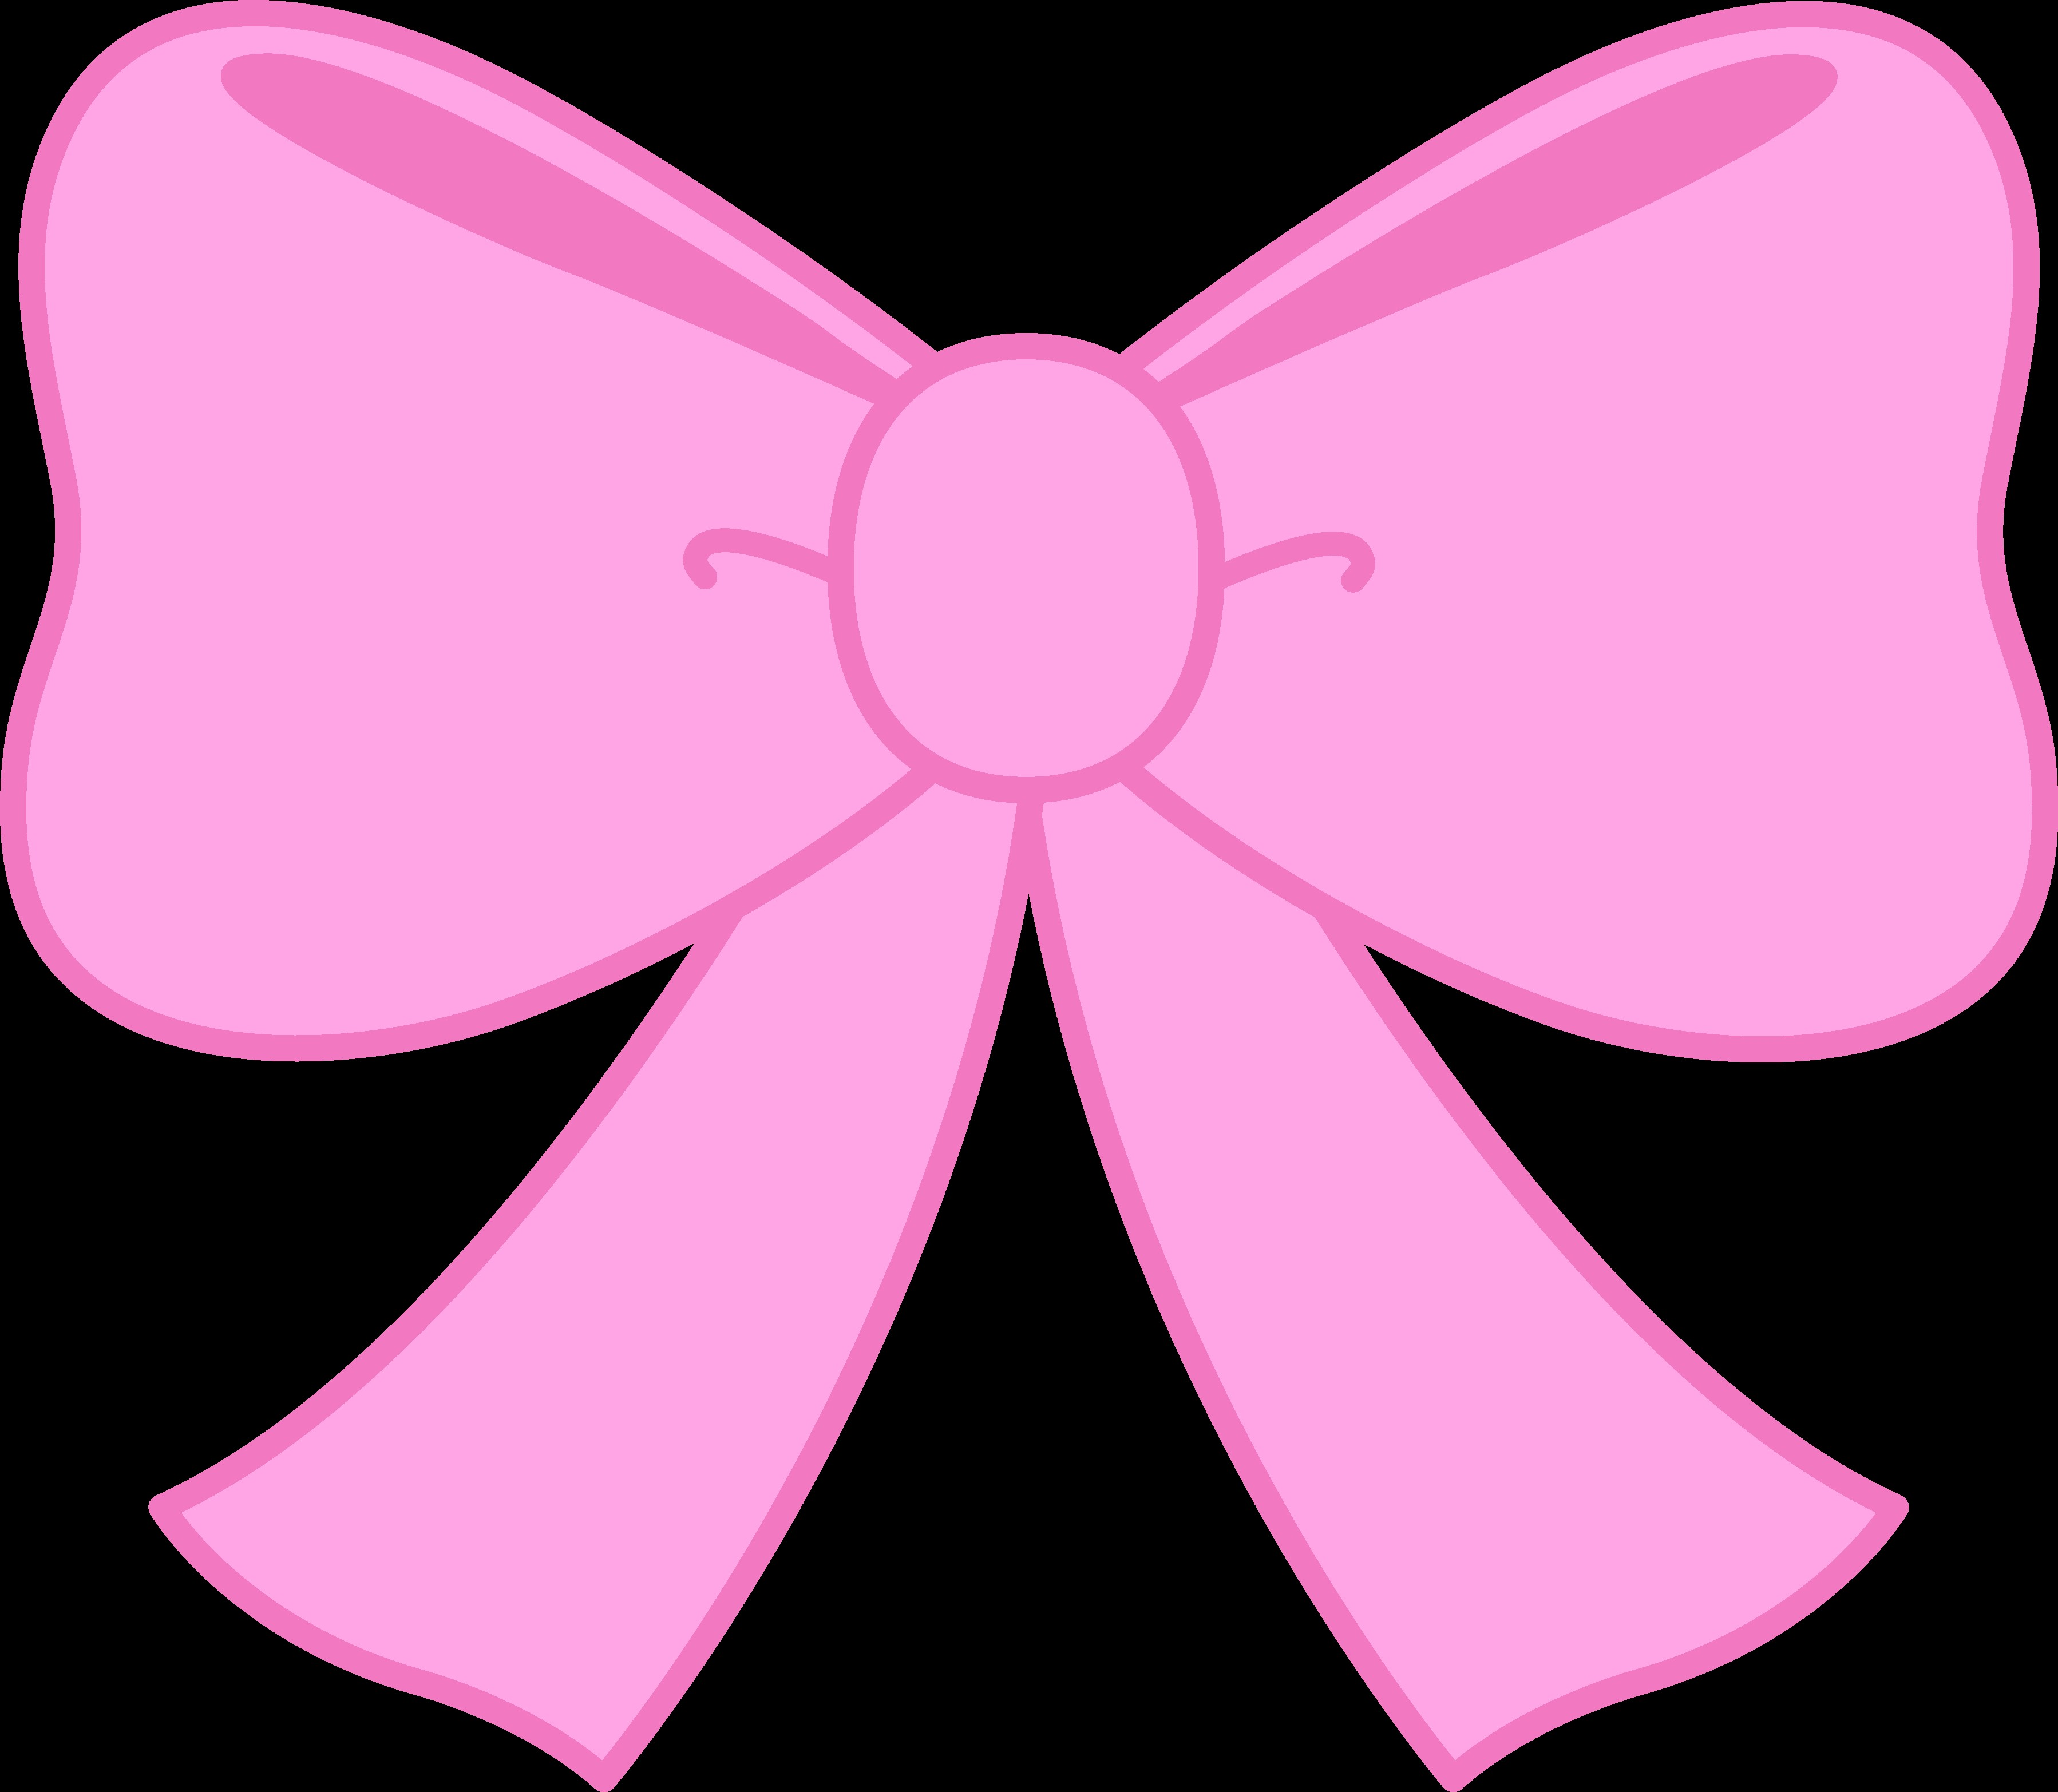 Bow clipart pink. Free cliparts download clip